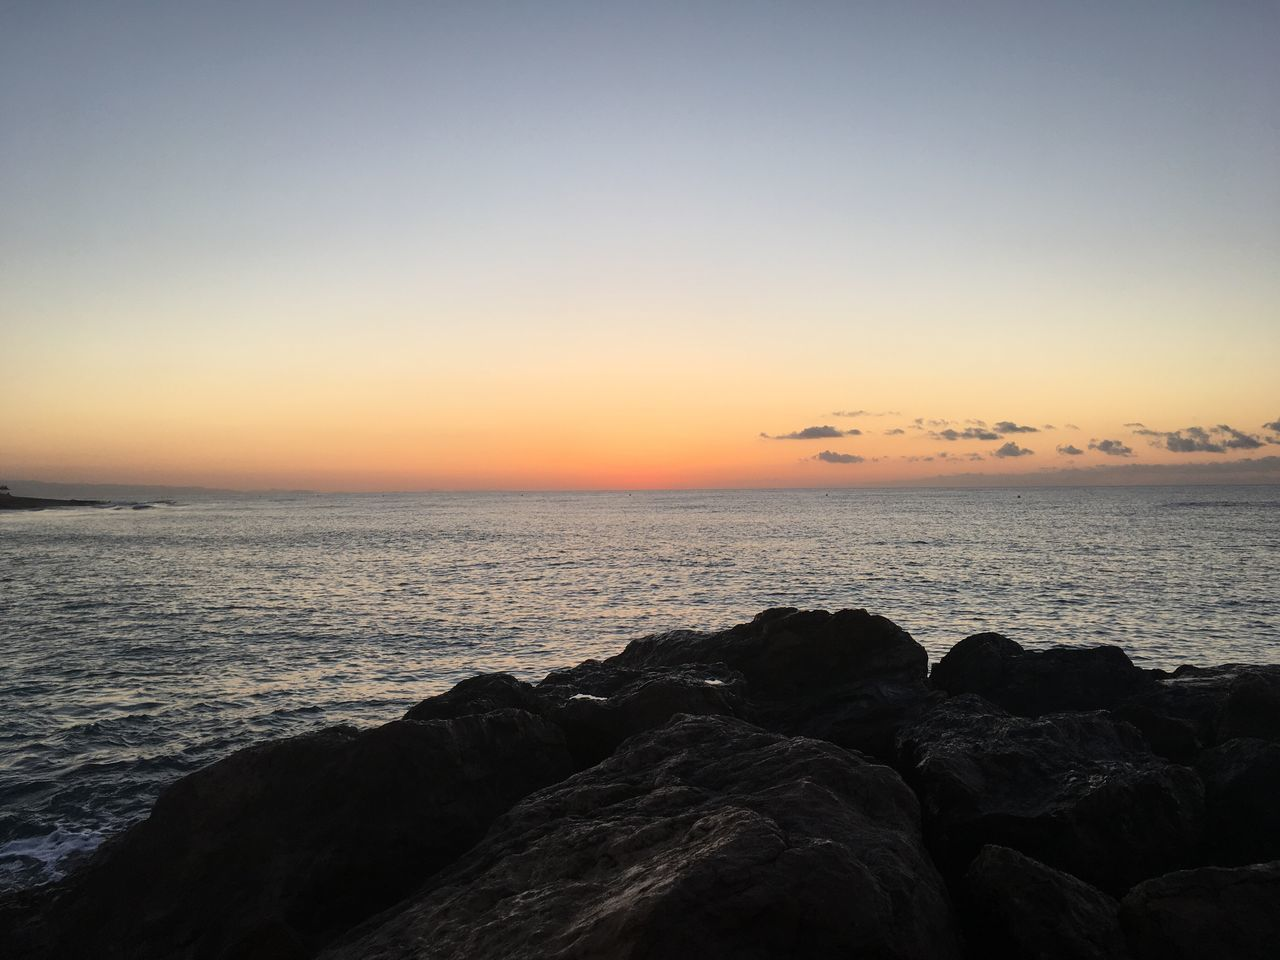 sea, sunset, horizon over water, beauty in nature, scenics, tranquil scene, nature, water, tranquility, idyllic, rock - object, beach, sky, outdoors, silhouette, no people, clear sky, pebble beach, day